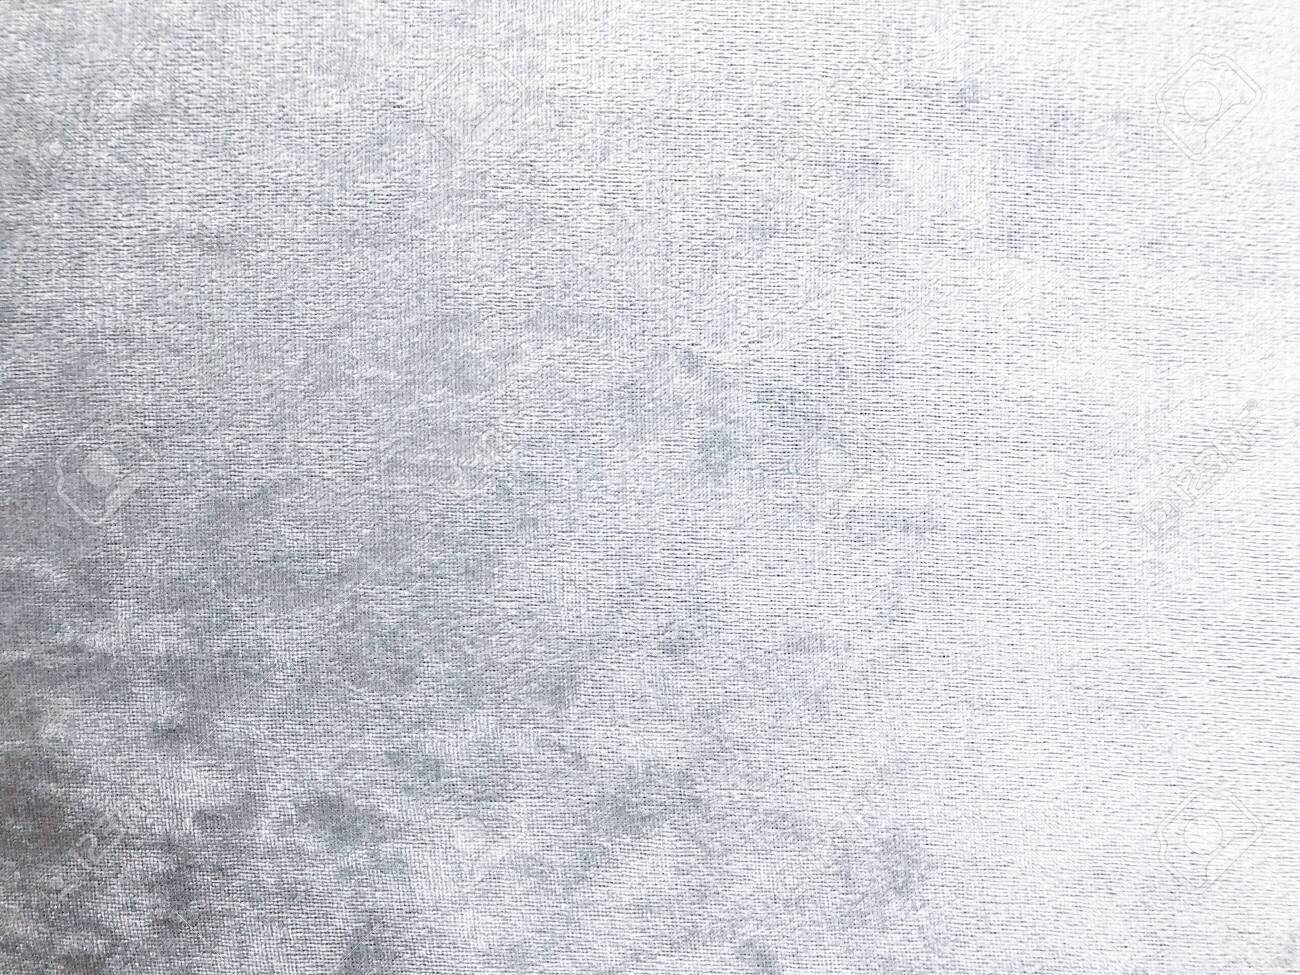 Soft Gray Velvet Fabric Texture Light Tone Smooth Fabric Background Stock Photo Picture And Royalty Free Image Image 128689045